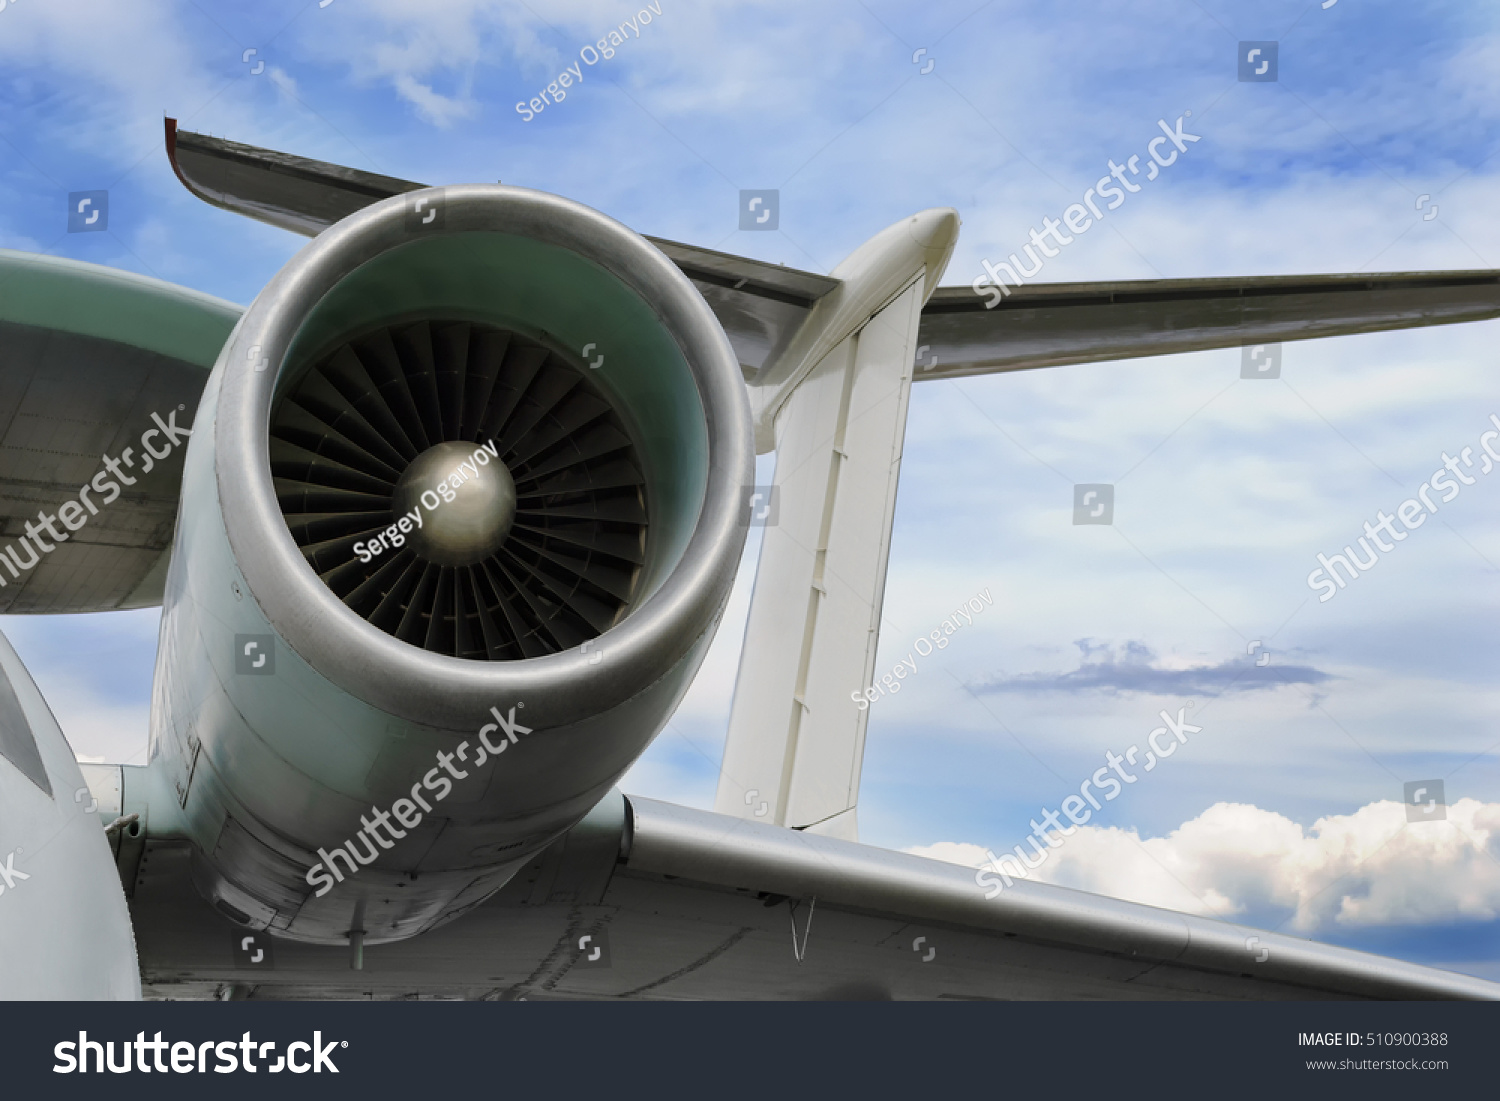 Close Airplane Jet Engine Parts Aircraft Stock Photo Edit Now Up Of The Fuselage And A Tail On